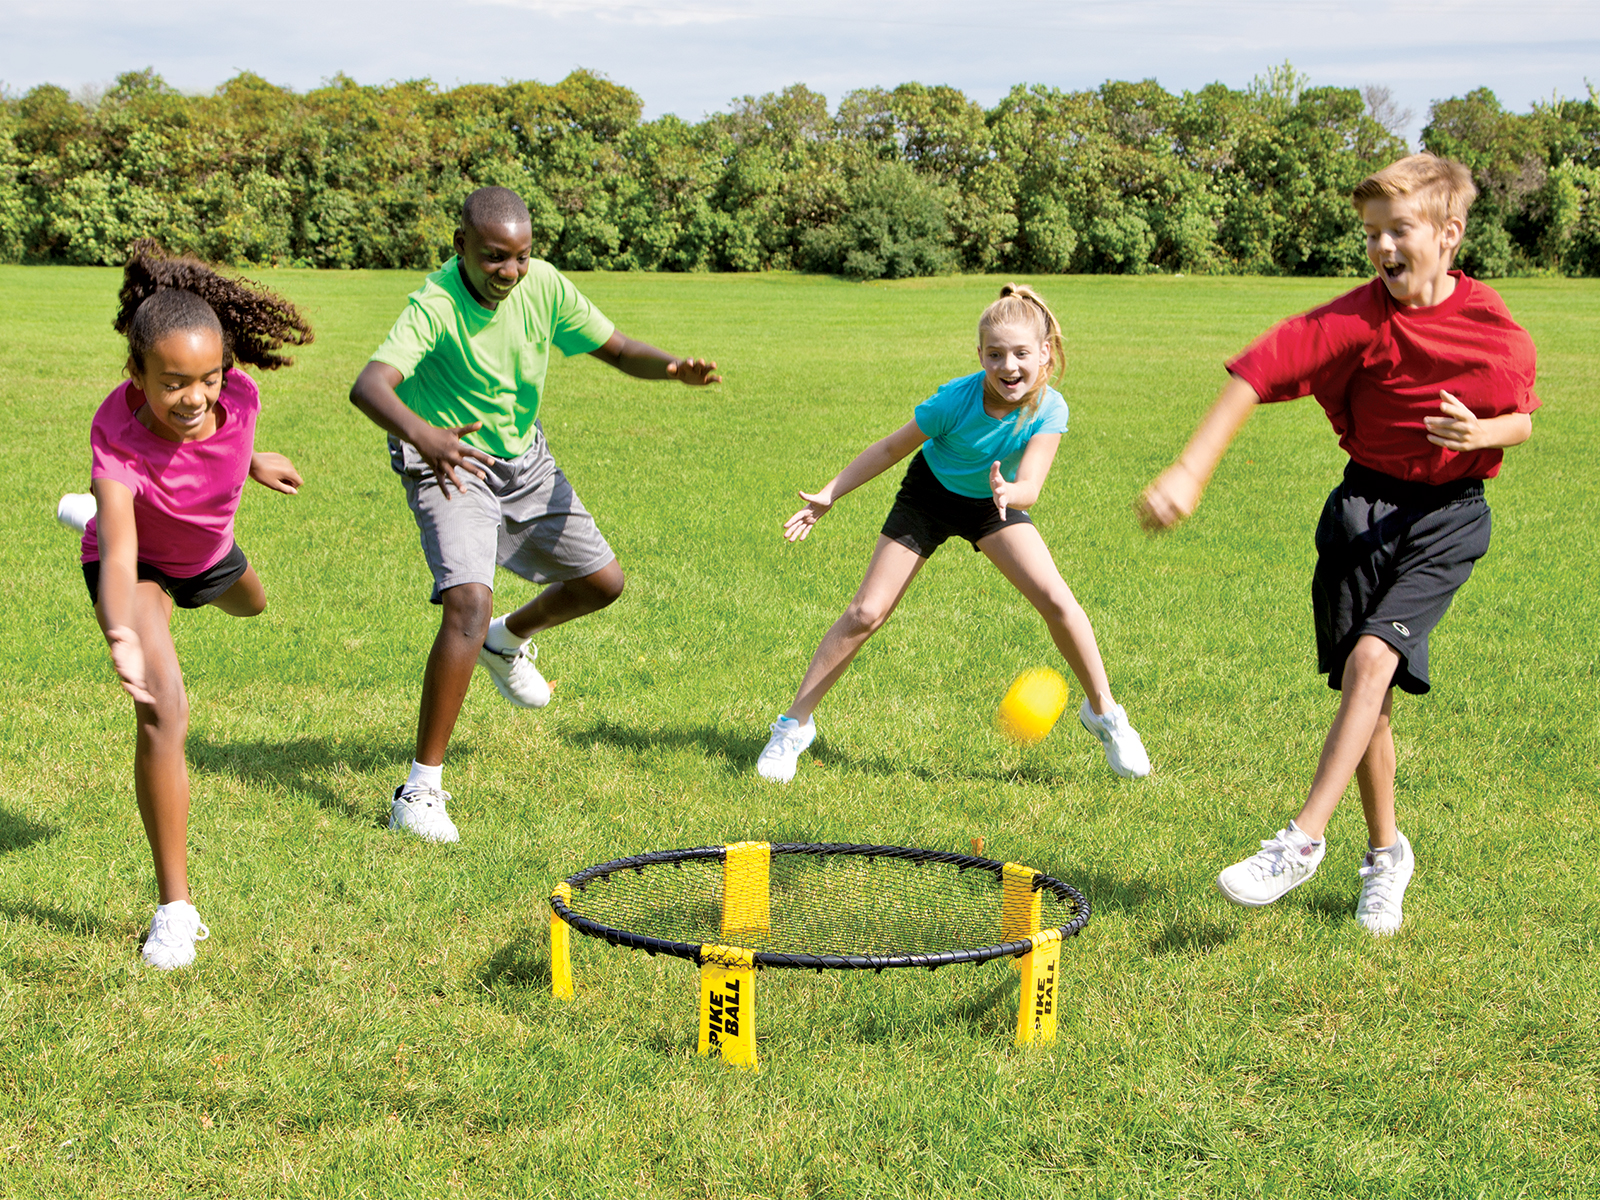 Spikeball™ Game Set